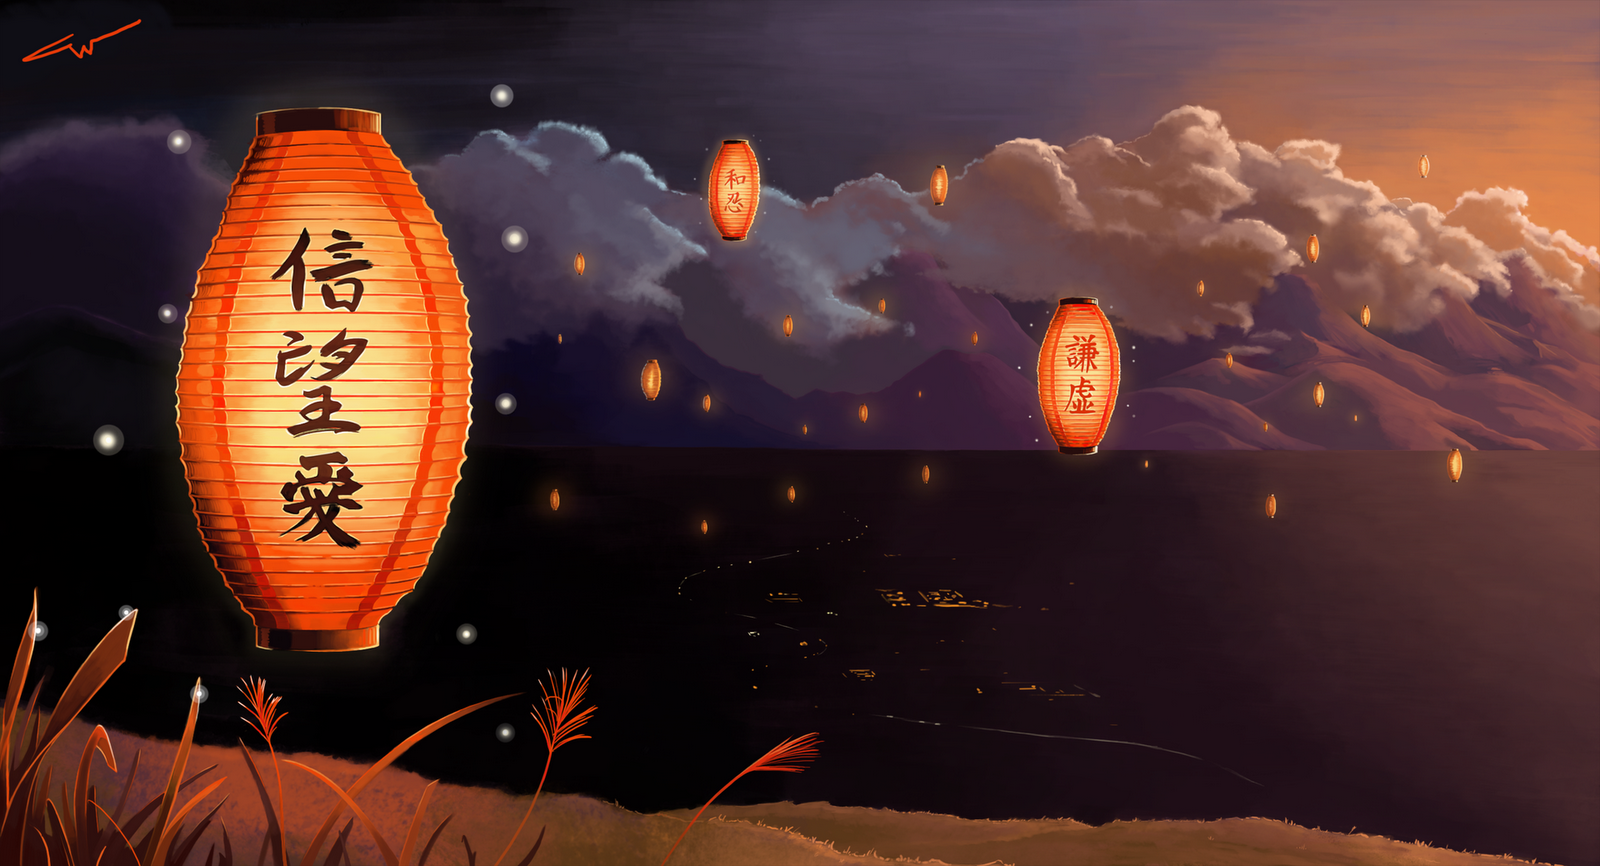 Japanese Paper Lantern Hd Wallpaper Best Desktop Wallpapers Image Source From This